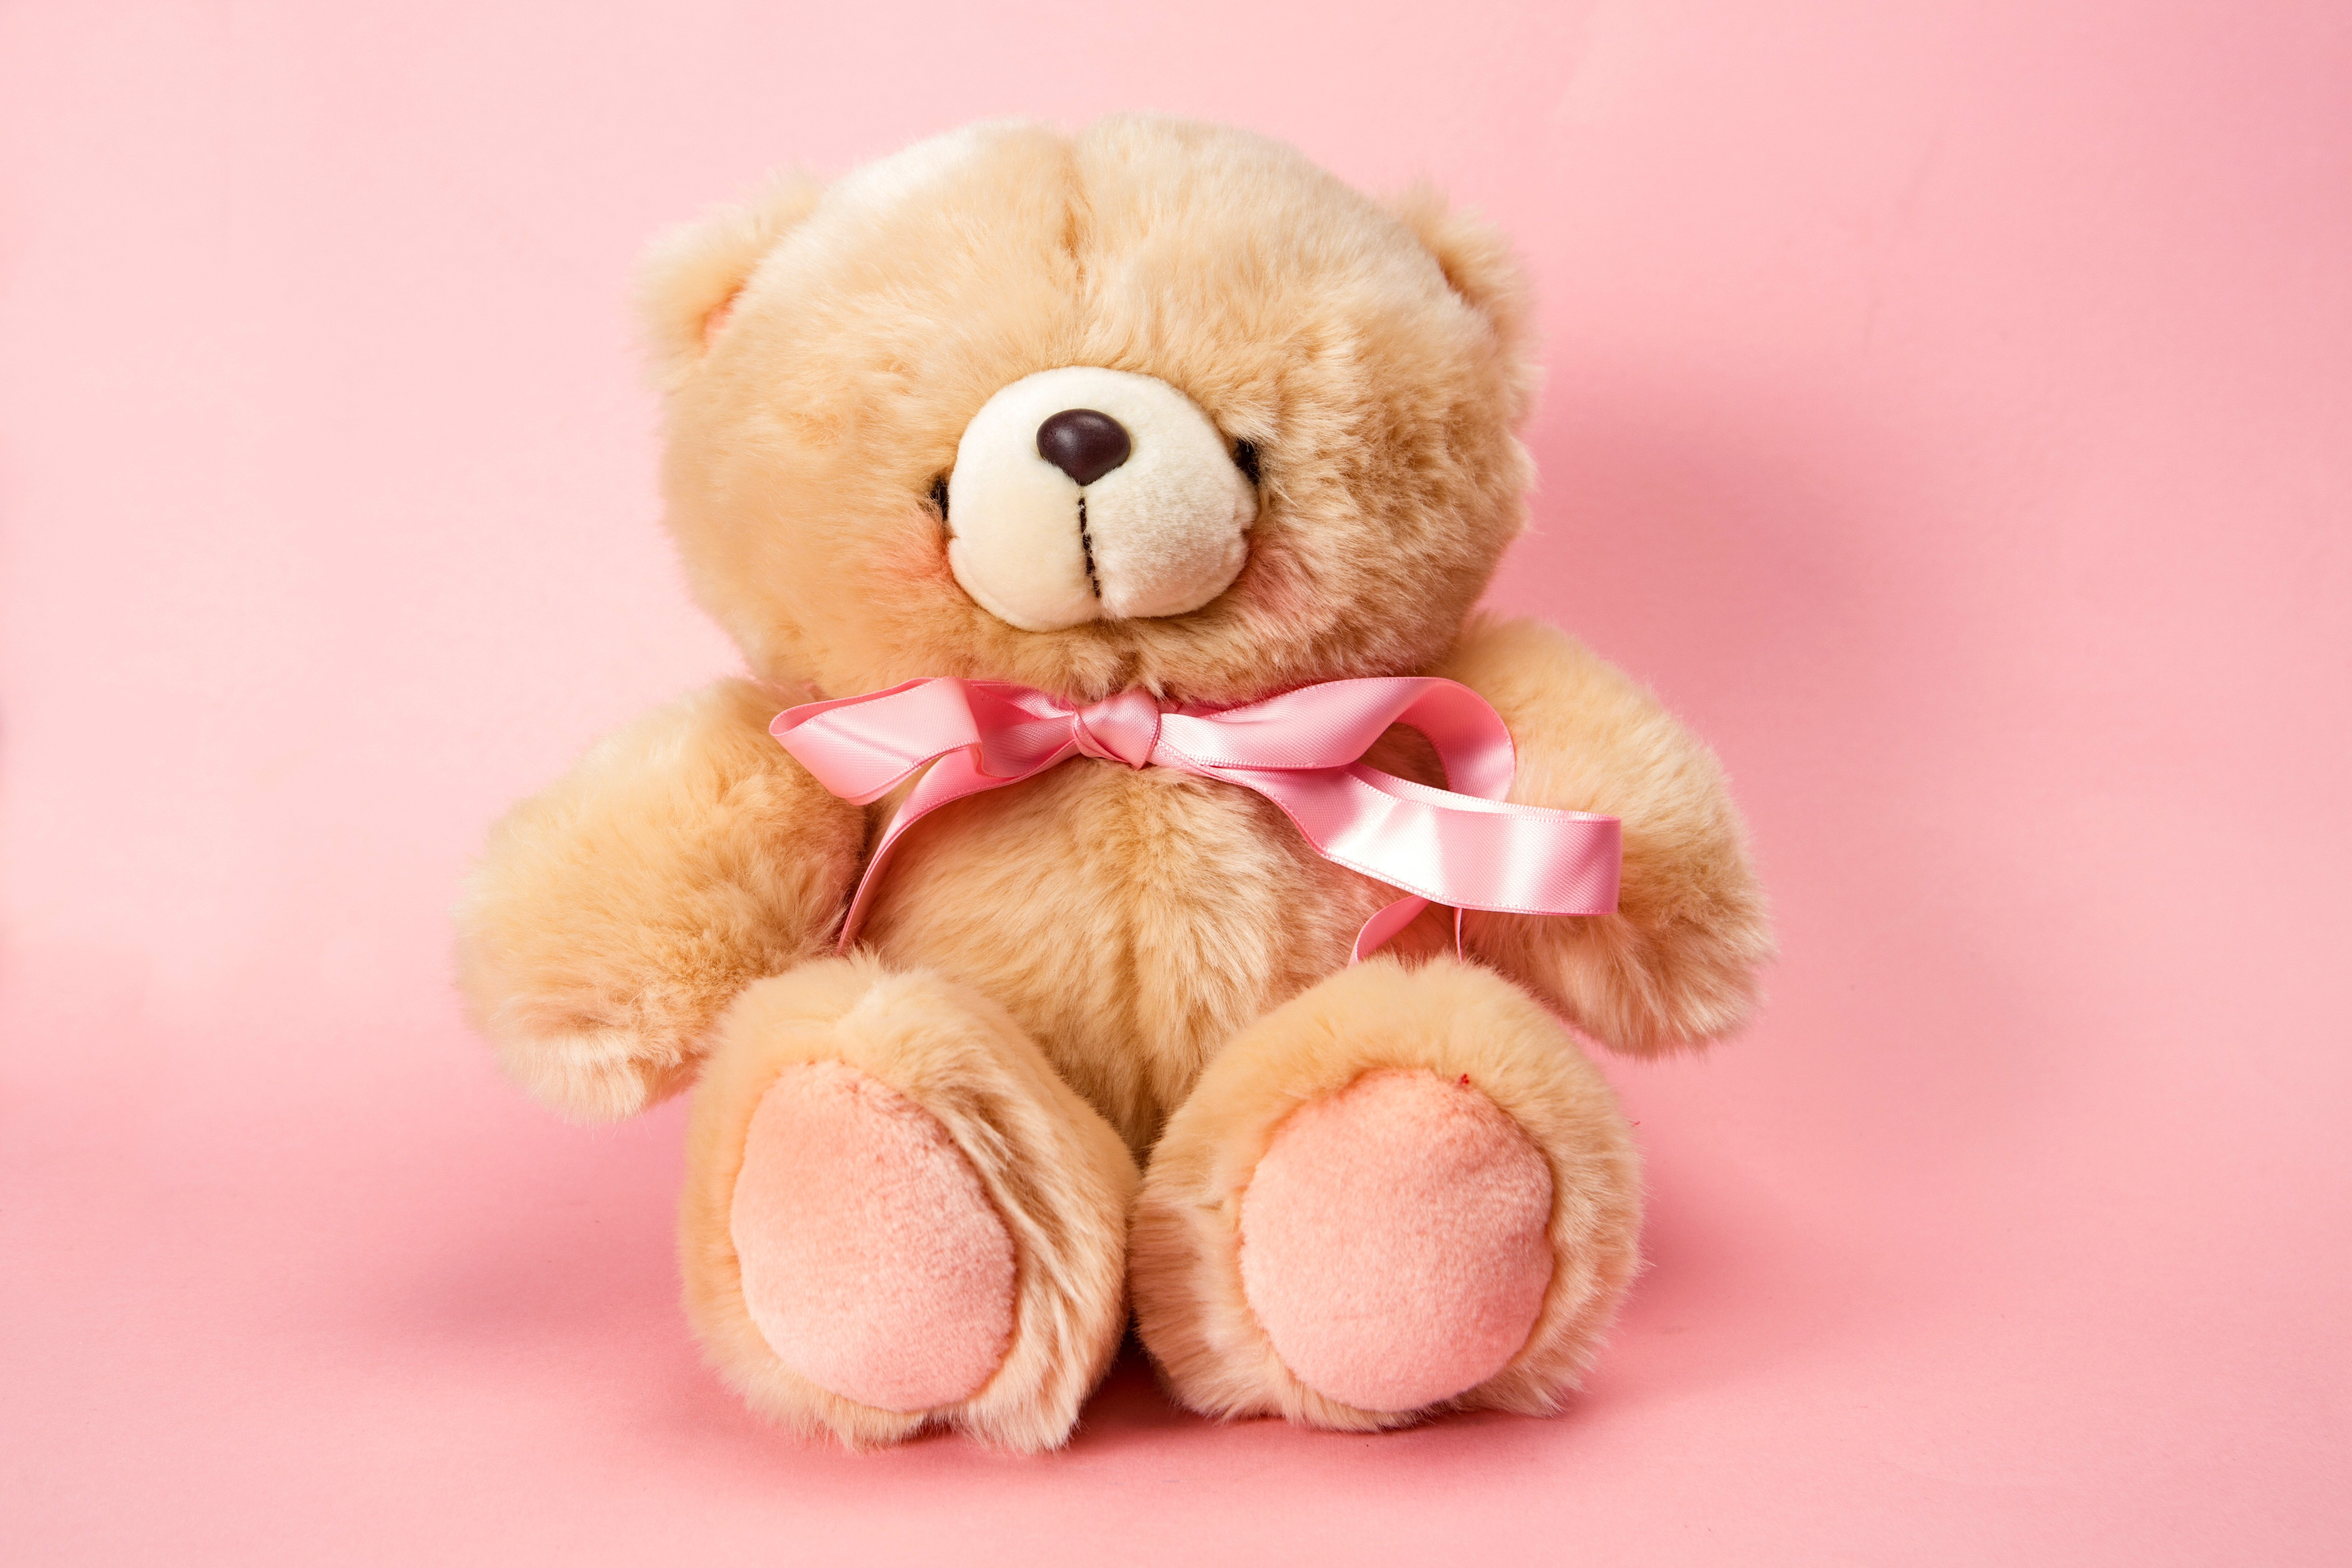 Bunny Cute Pink Teddy Bear Hd Wallpapers For Desktop: Download Teddy Bear Pink Wallpaper Gallery